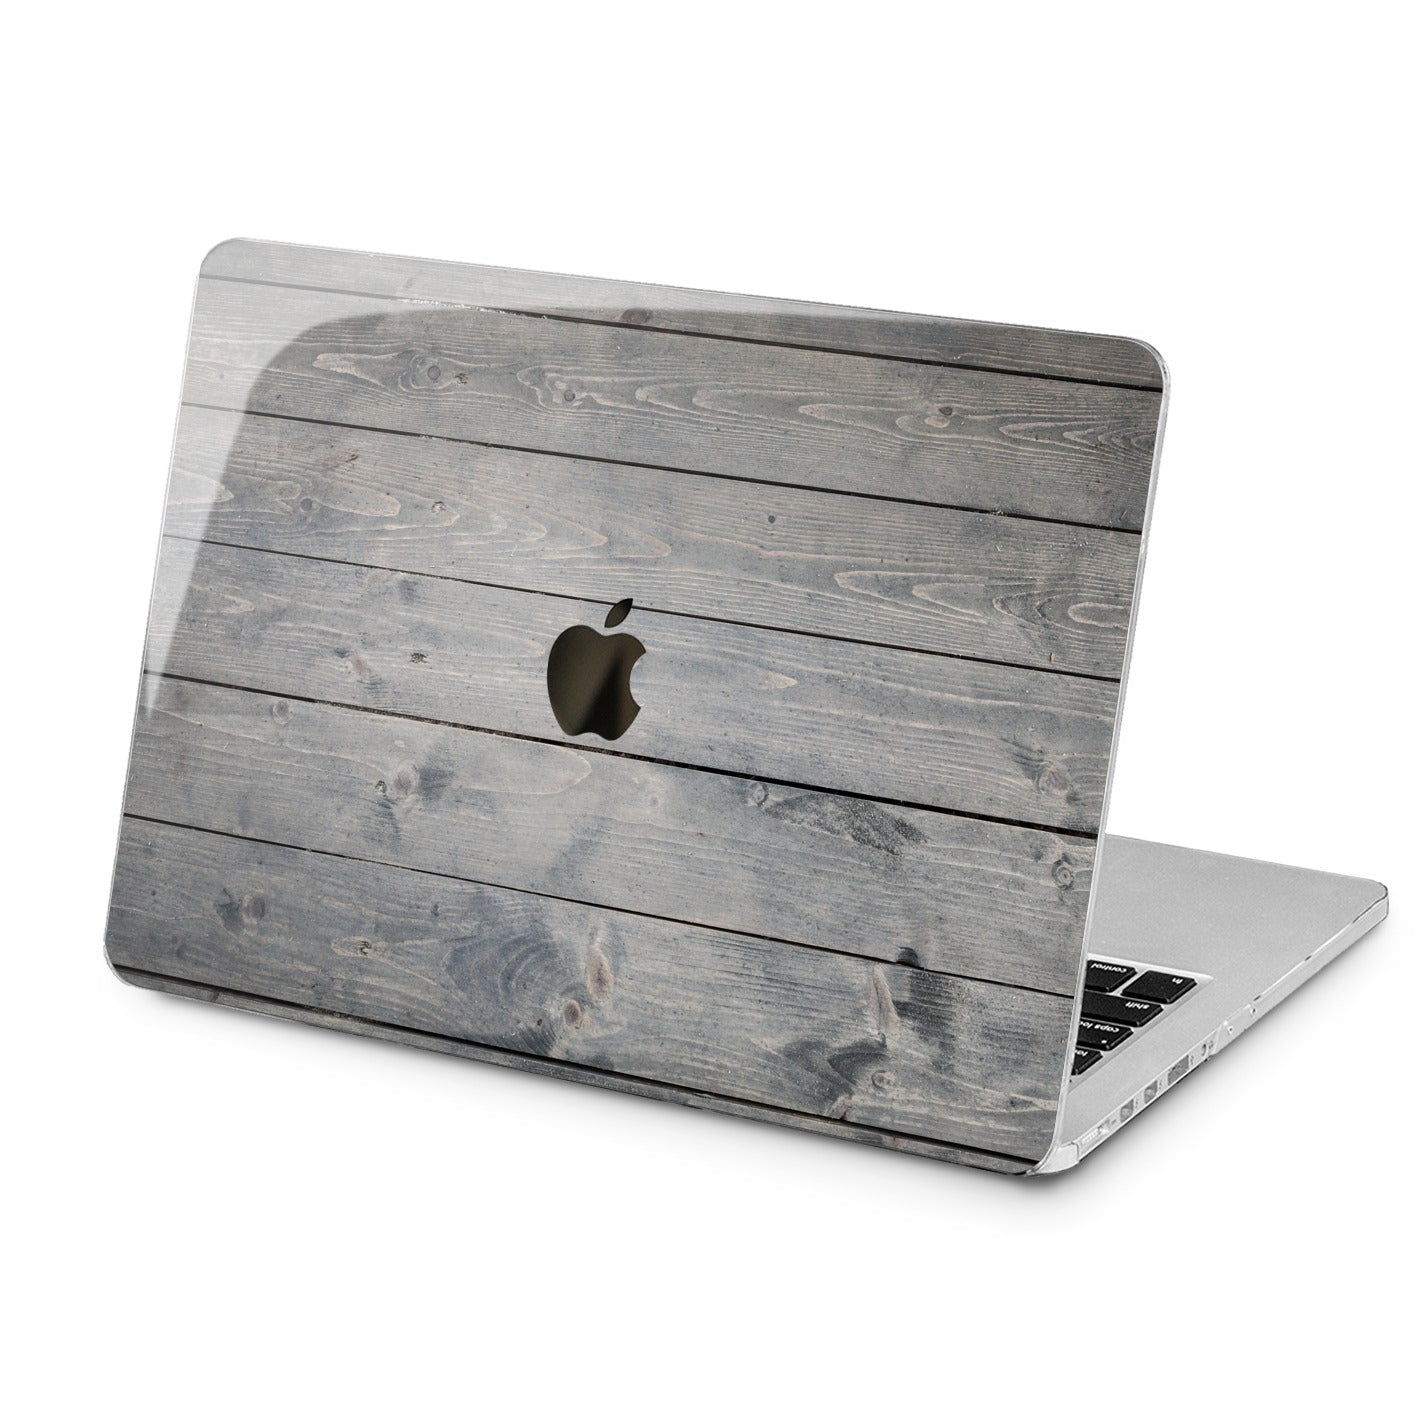 Lex Altern Old Planks Style Case for your Laptop Apple Macbook.